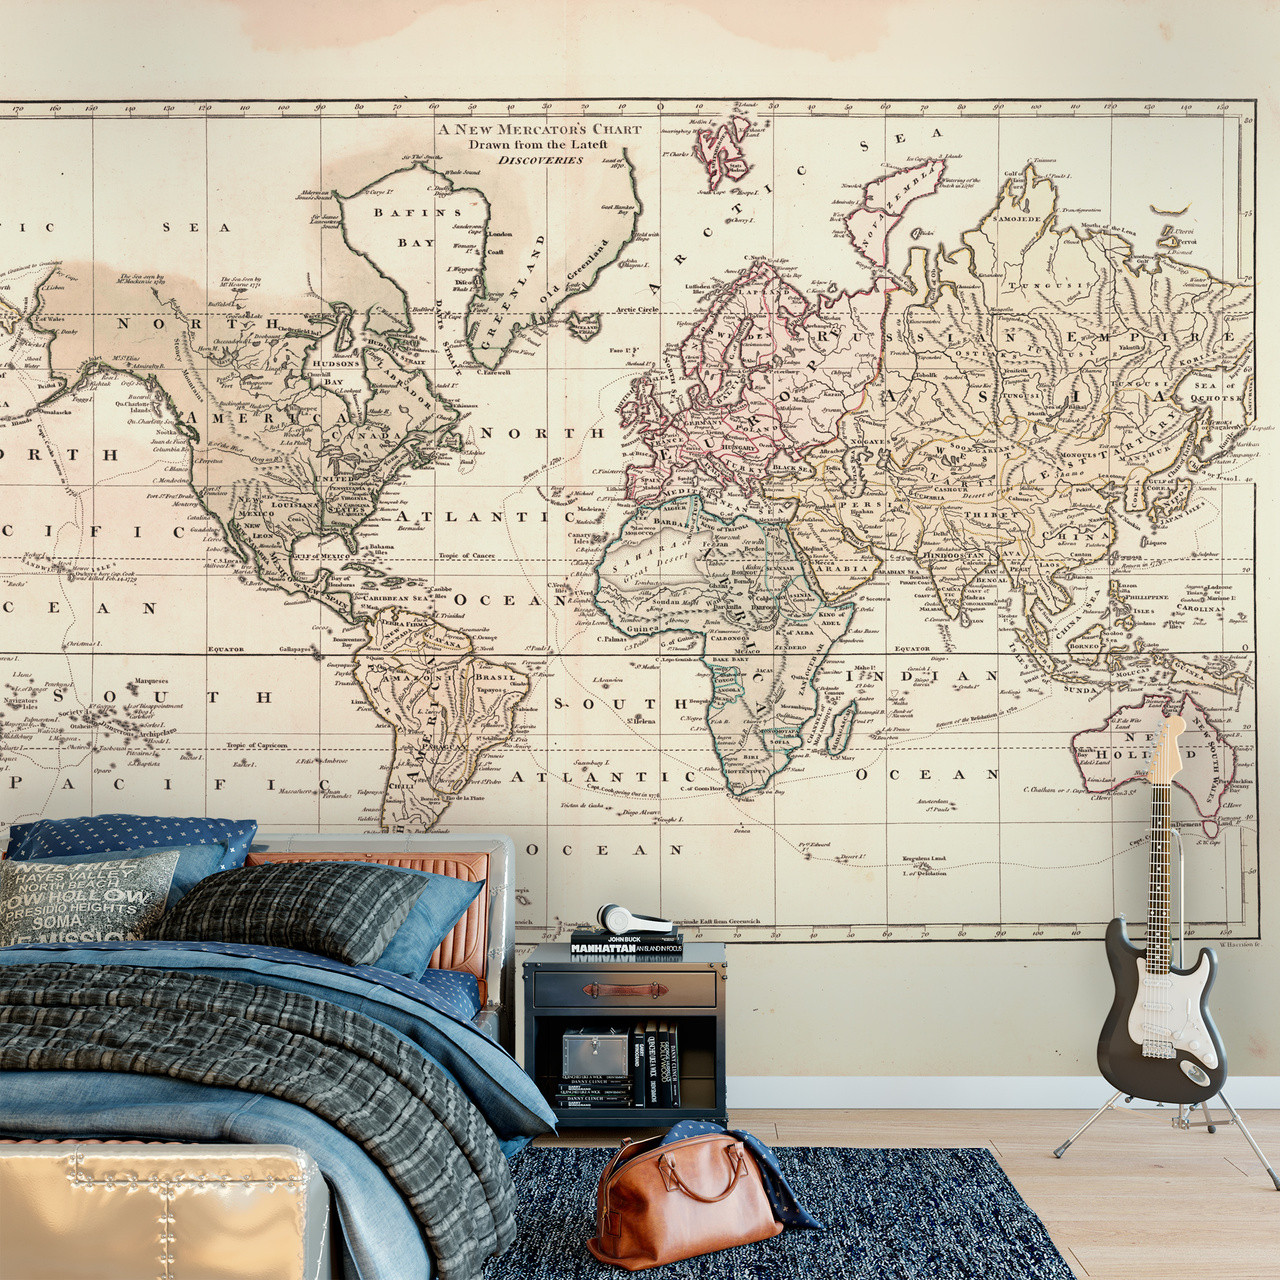 Wall Mural Vintage 1800 World Atlas Map Wall Self-Adhesive Fabric Decal